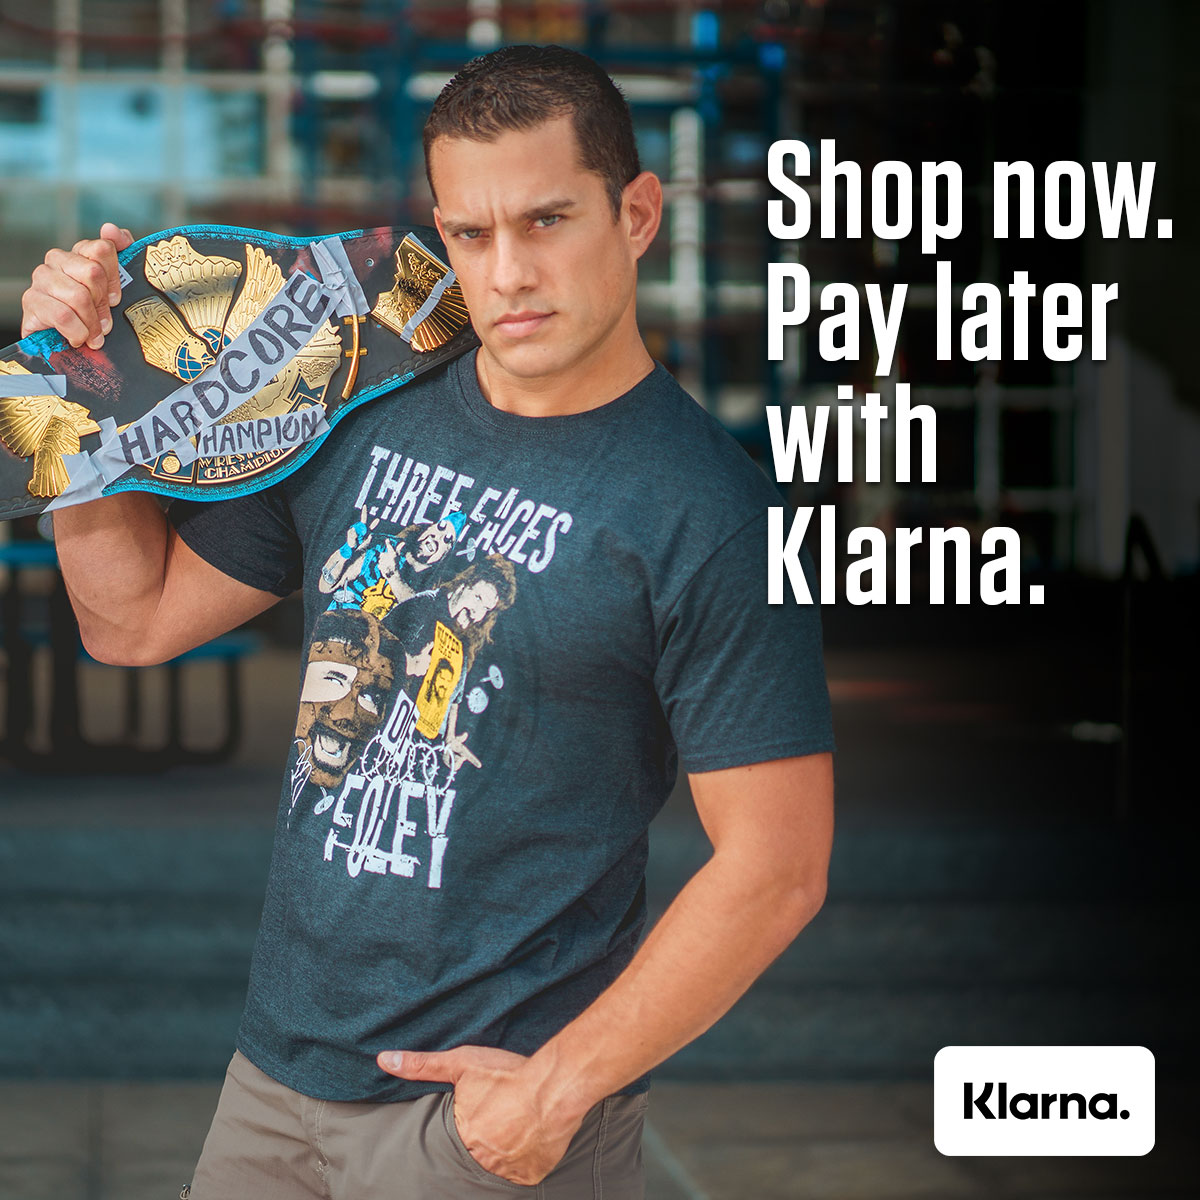 #WWELegendsShop and #Klarna - a championship team! We've teamed up with @Klarna to offer the smoothest payment options at checkout! Select Klarna at checkout to split your purchase into 4 equal installments. No added interest or fees when you pay on time!  https://t.co/pkLyiUUnaj https://t.co/GL1HDrSuOo